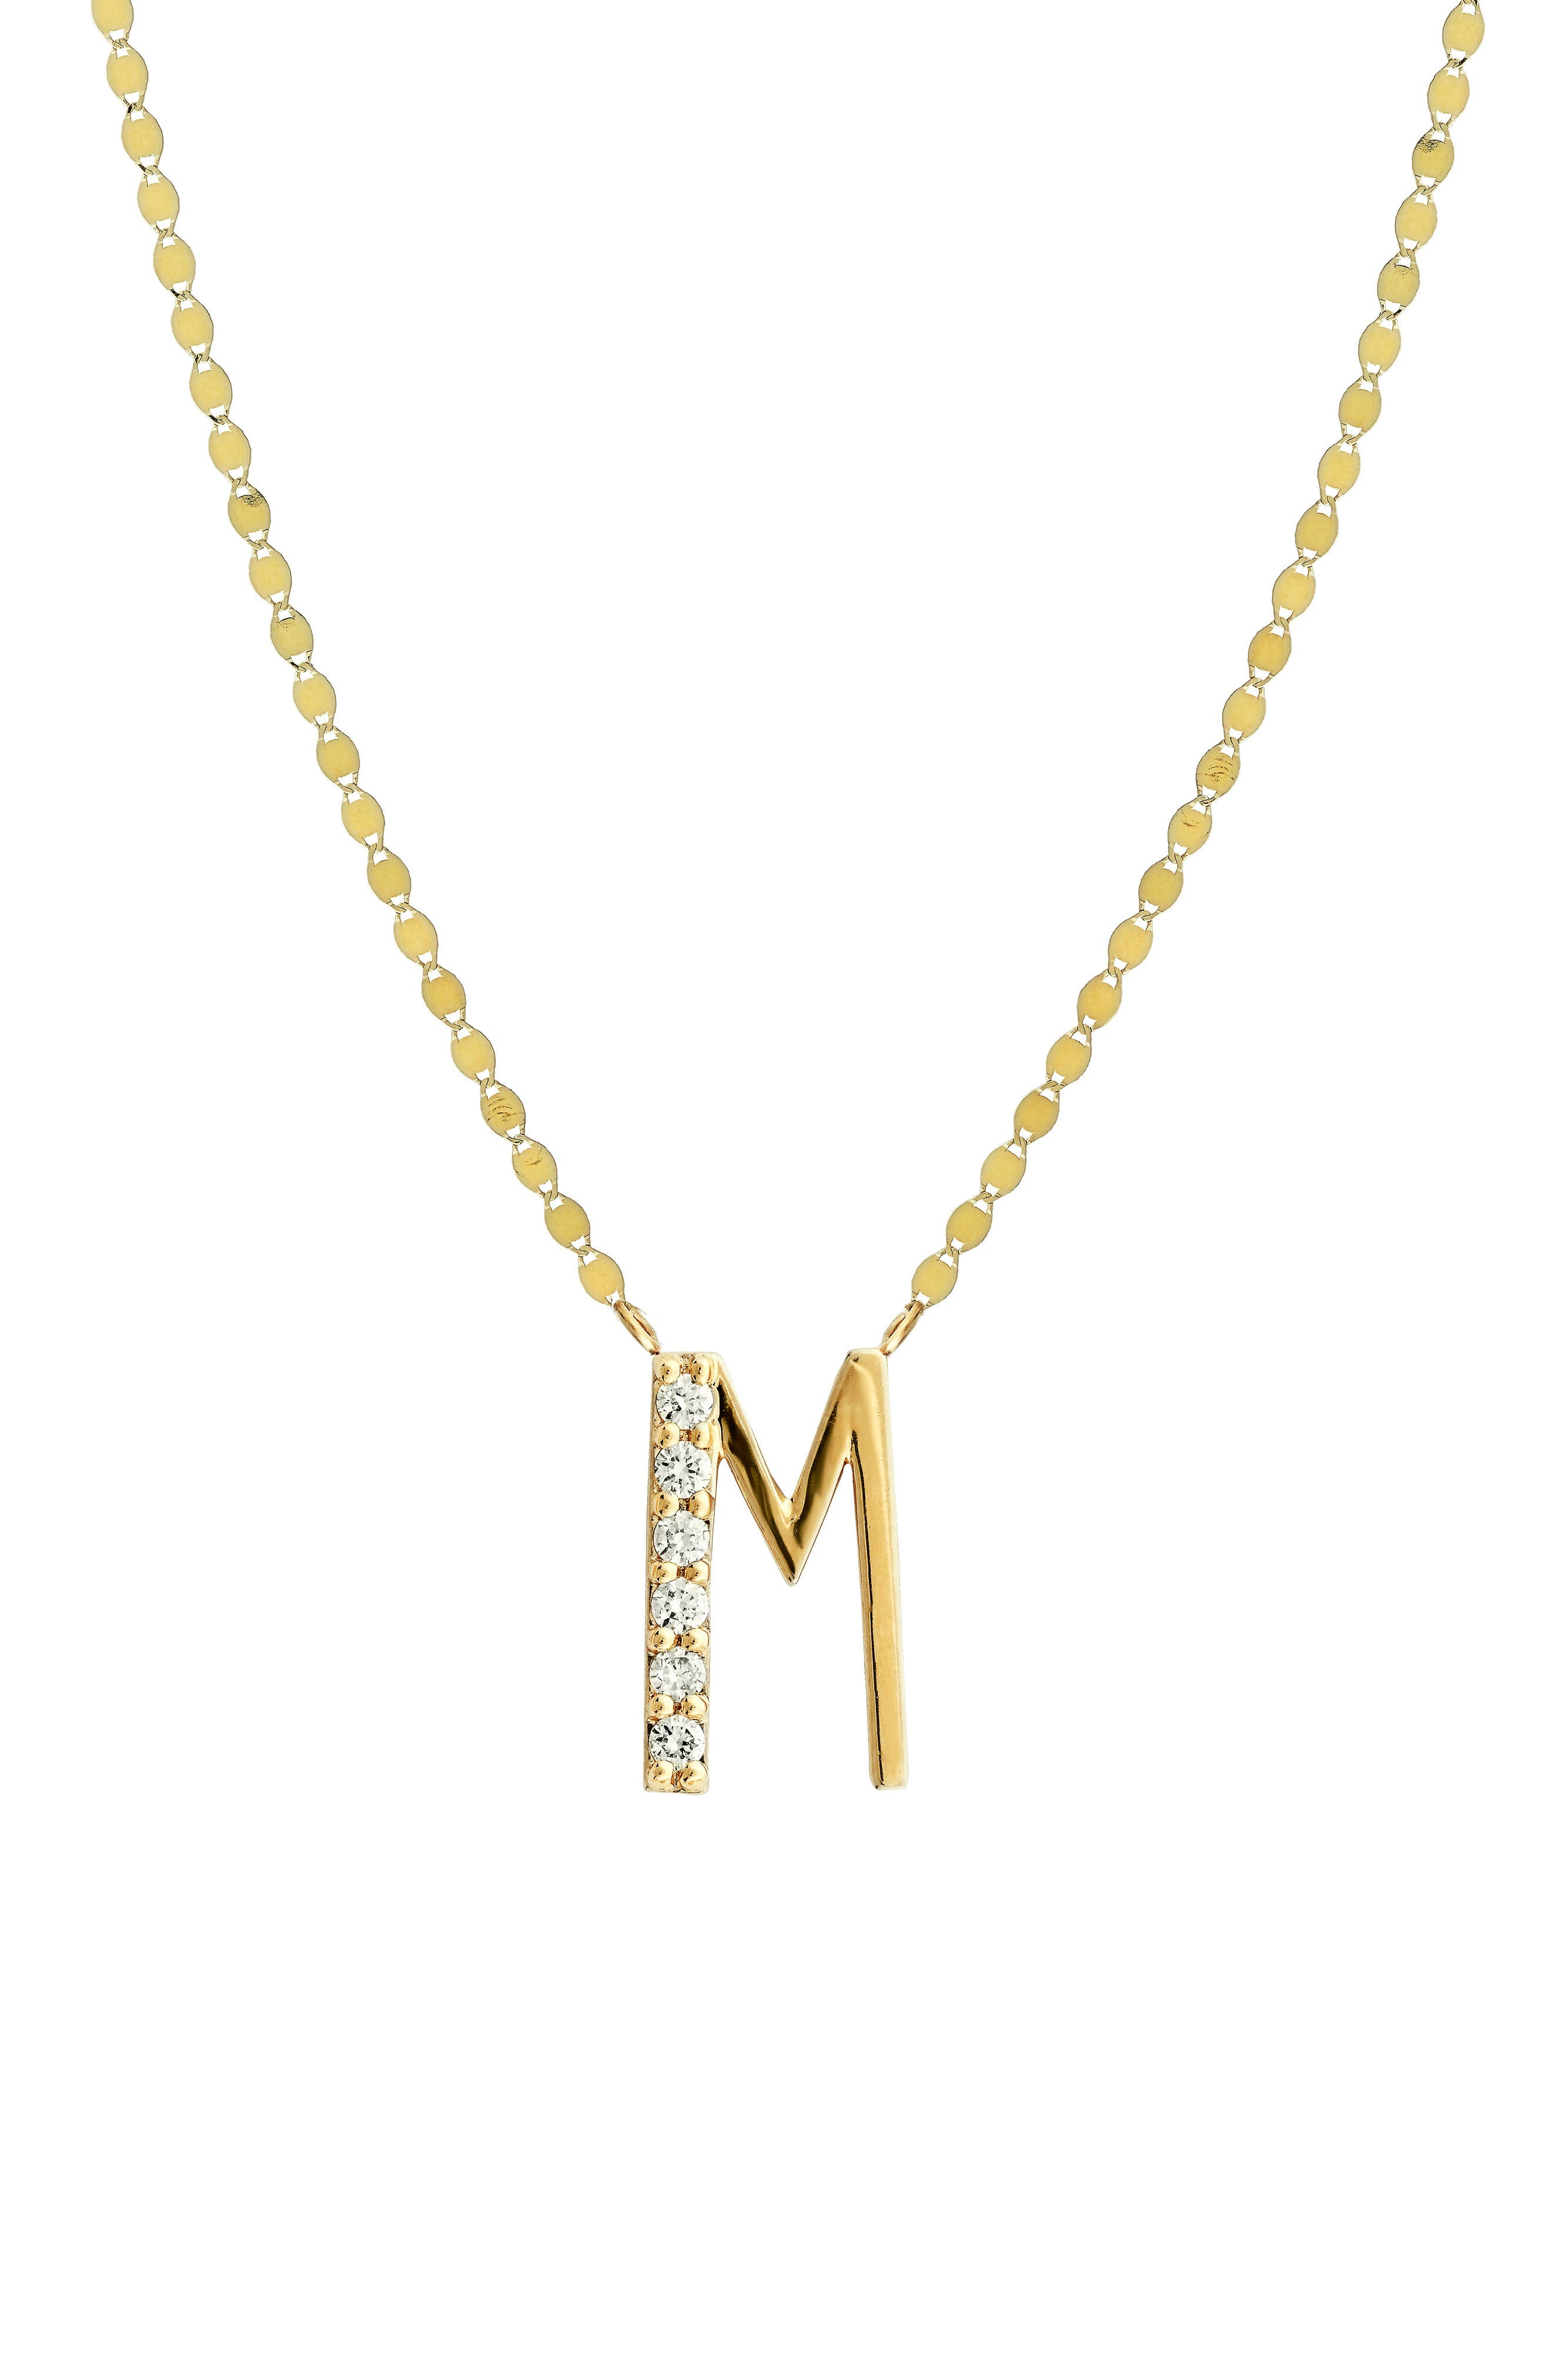 Initial Pendant Necklace,                         Main,                         color, YELLOW GOLD- M